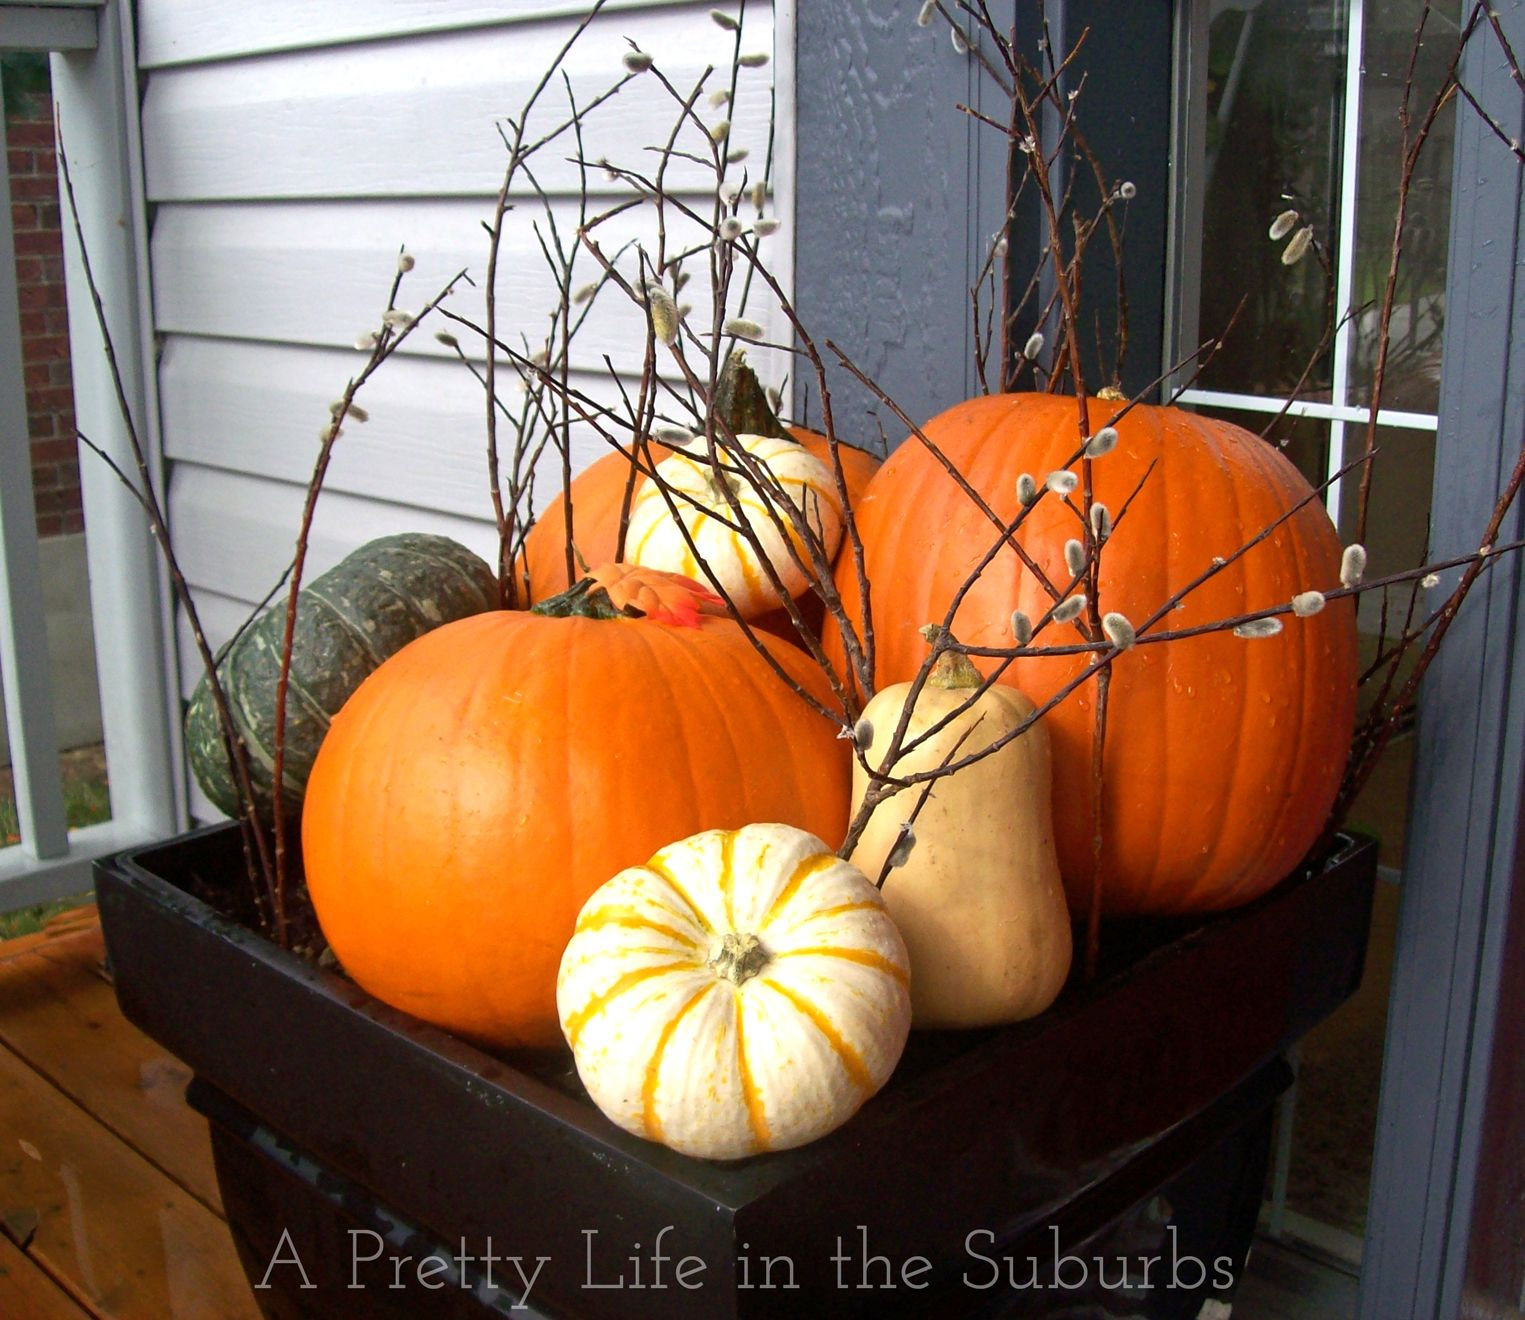 fall porch decorating ideas | Fall Porch Decorating Ideas #falldecorideasfortheporchoutdoorspaces